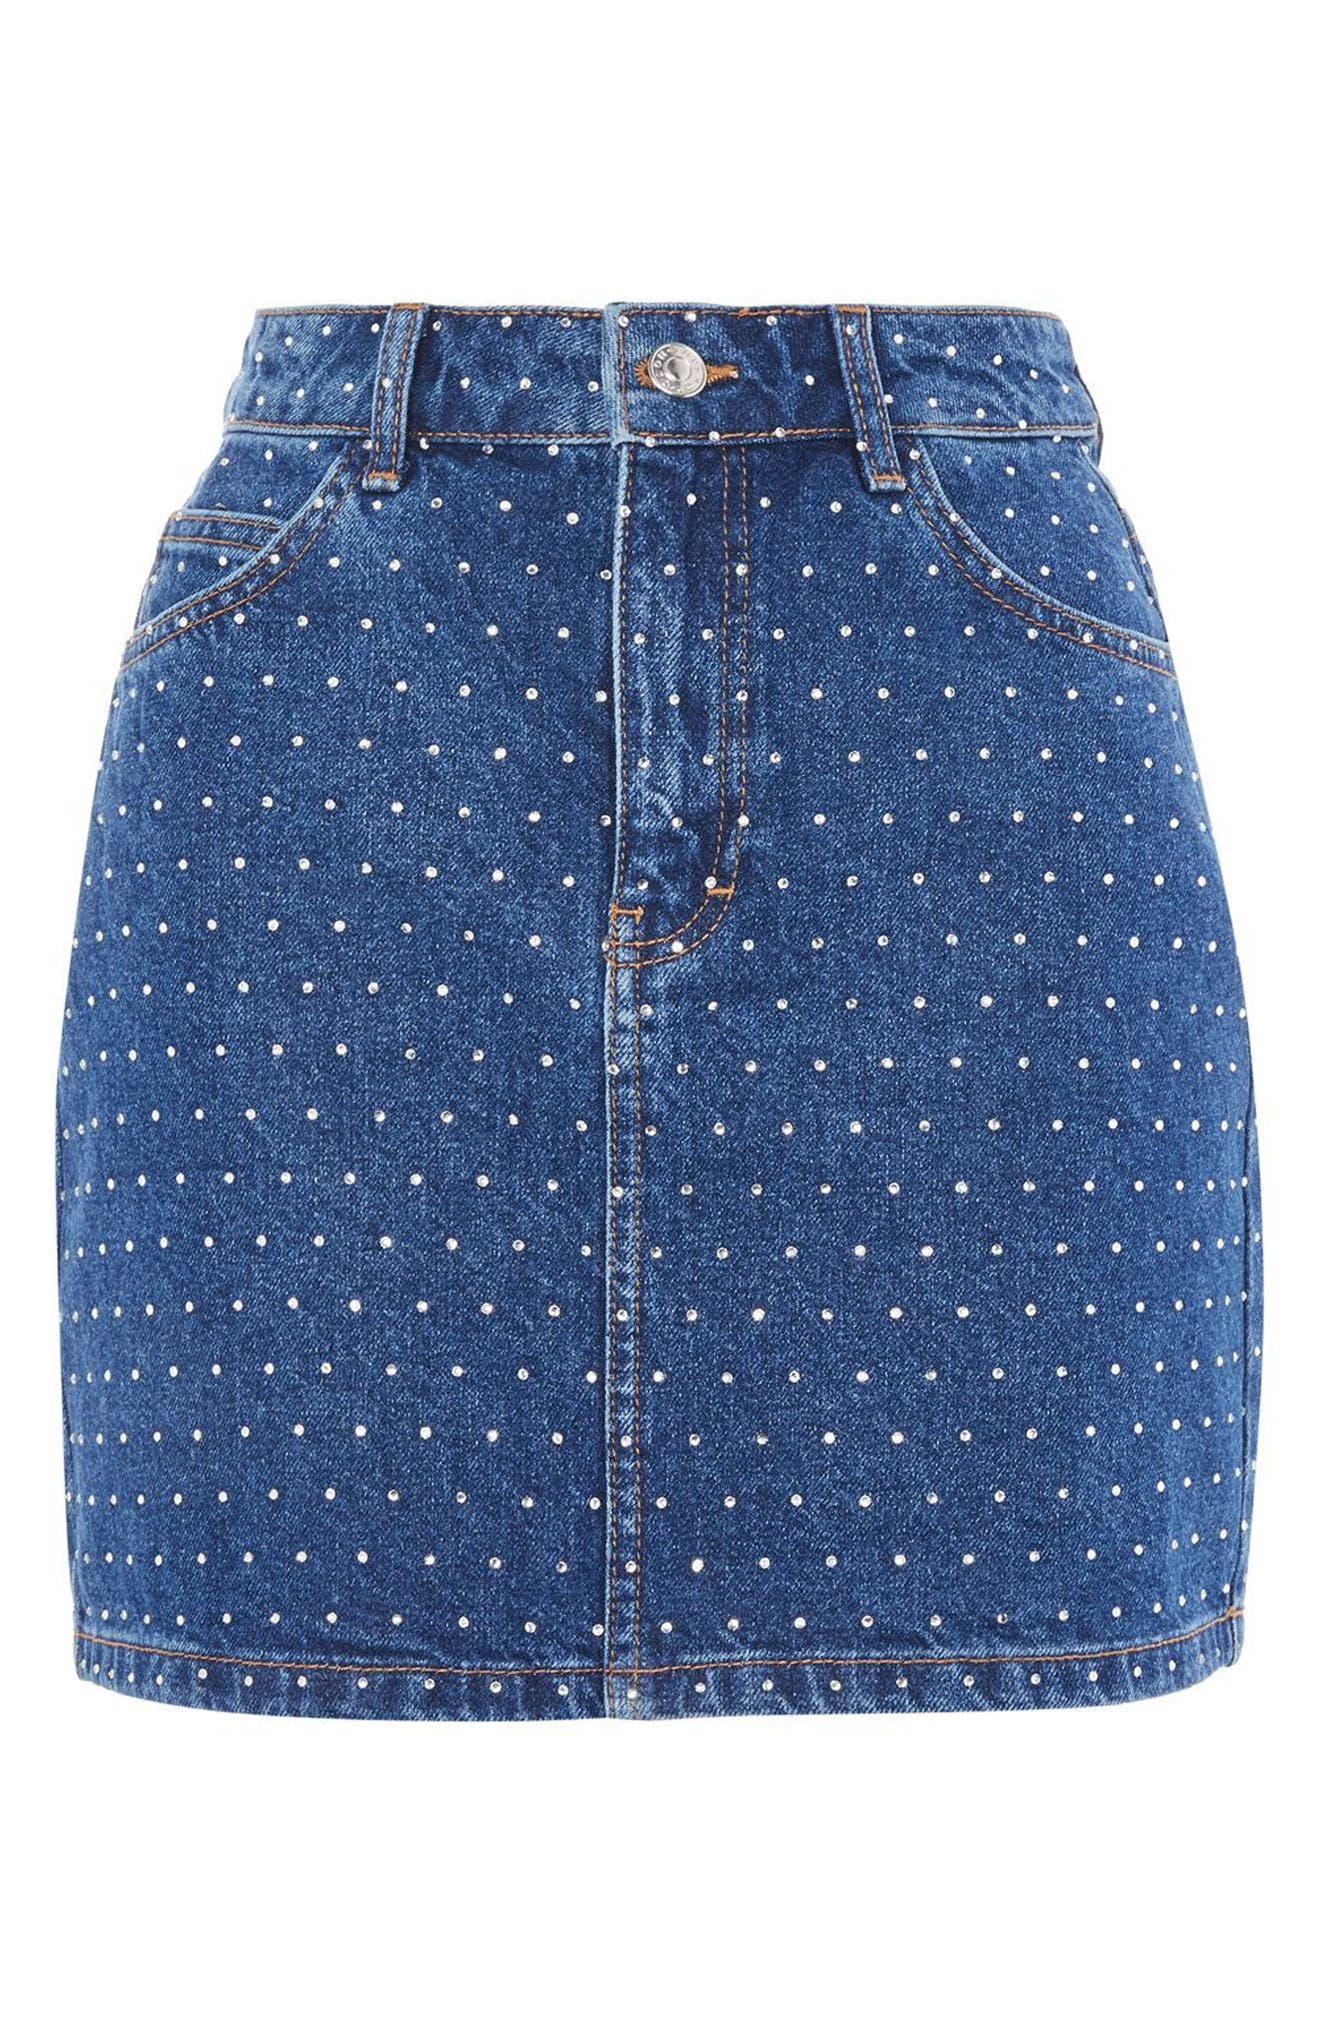 Crystal Studded Denim Miniskirt,                             Alternate thumbnail 4, color,                             Mid Denim